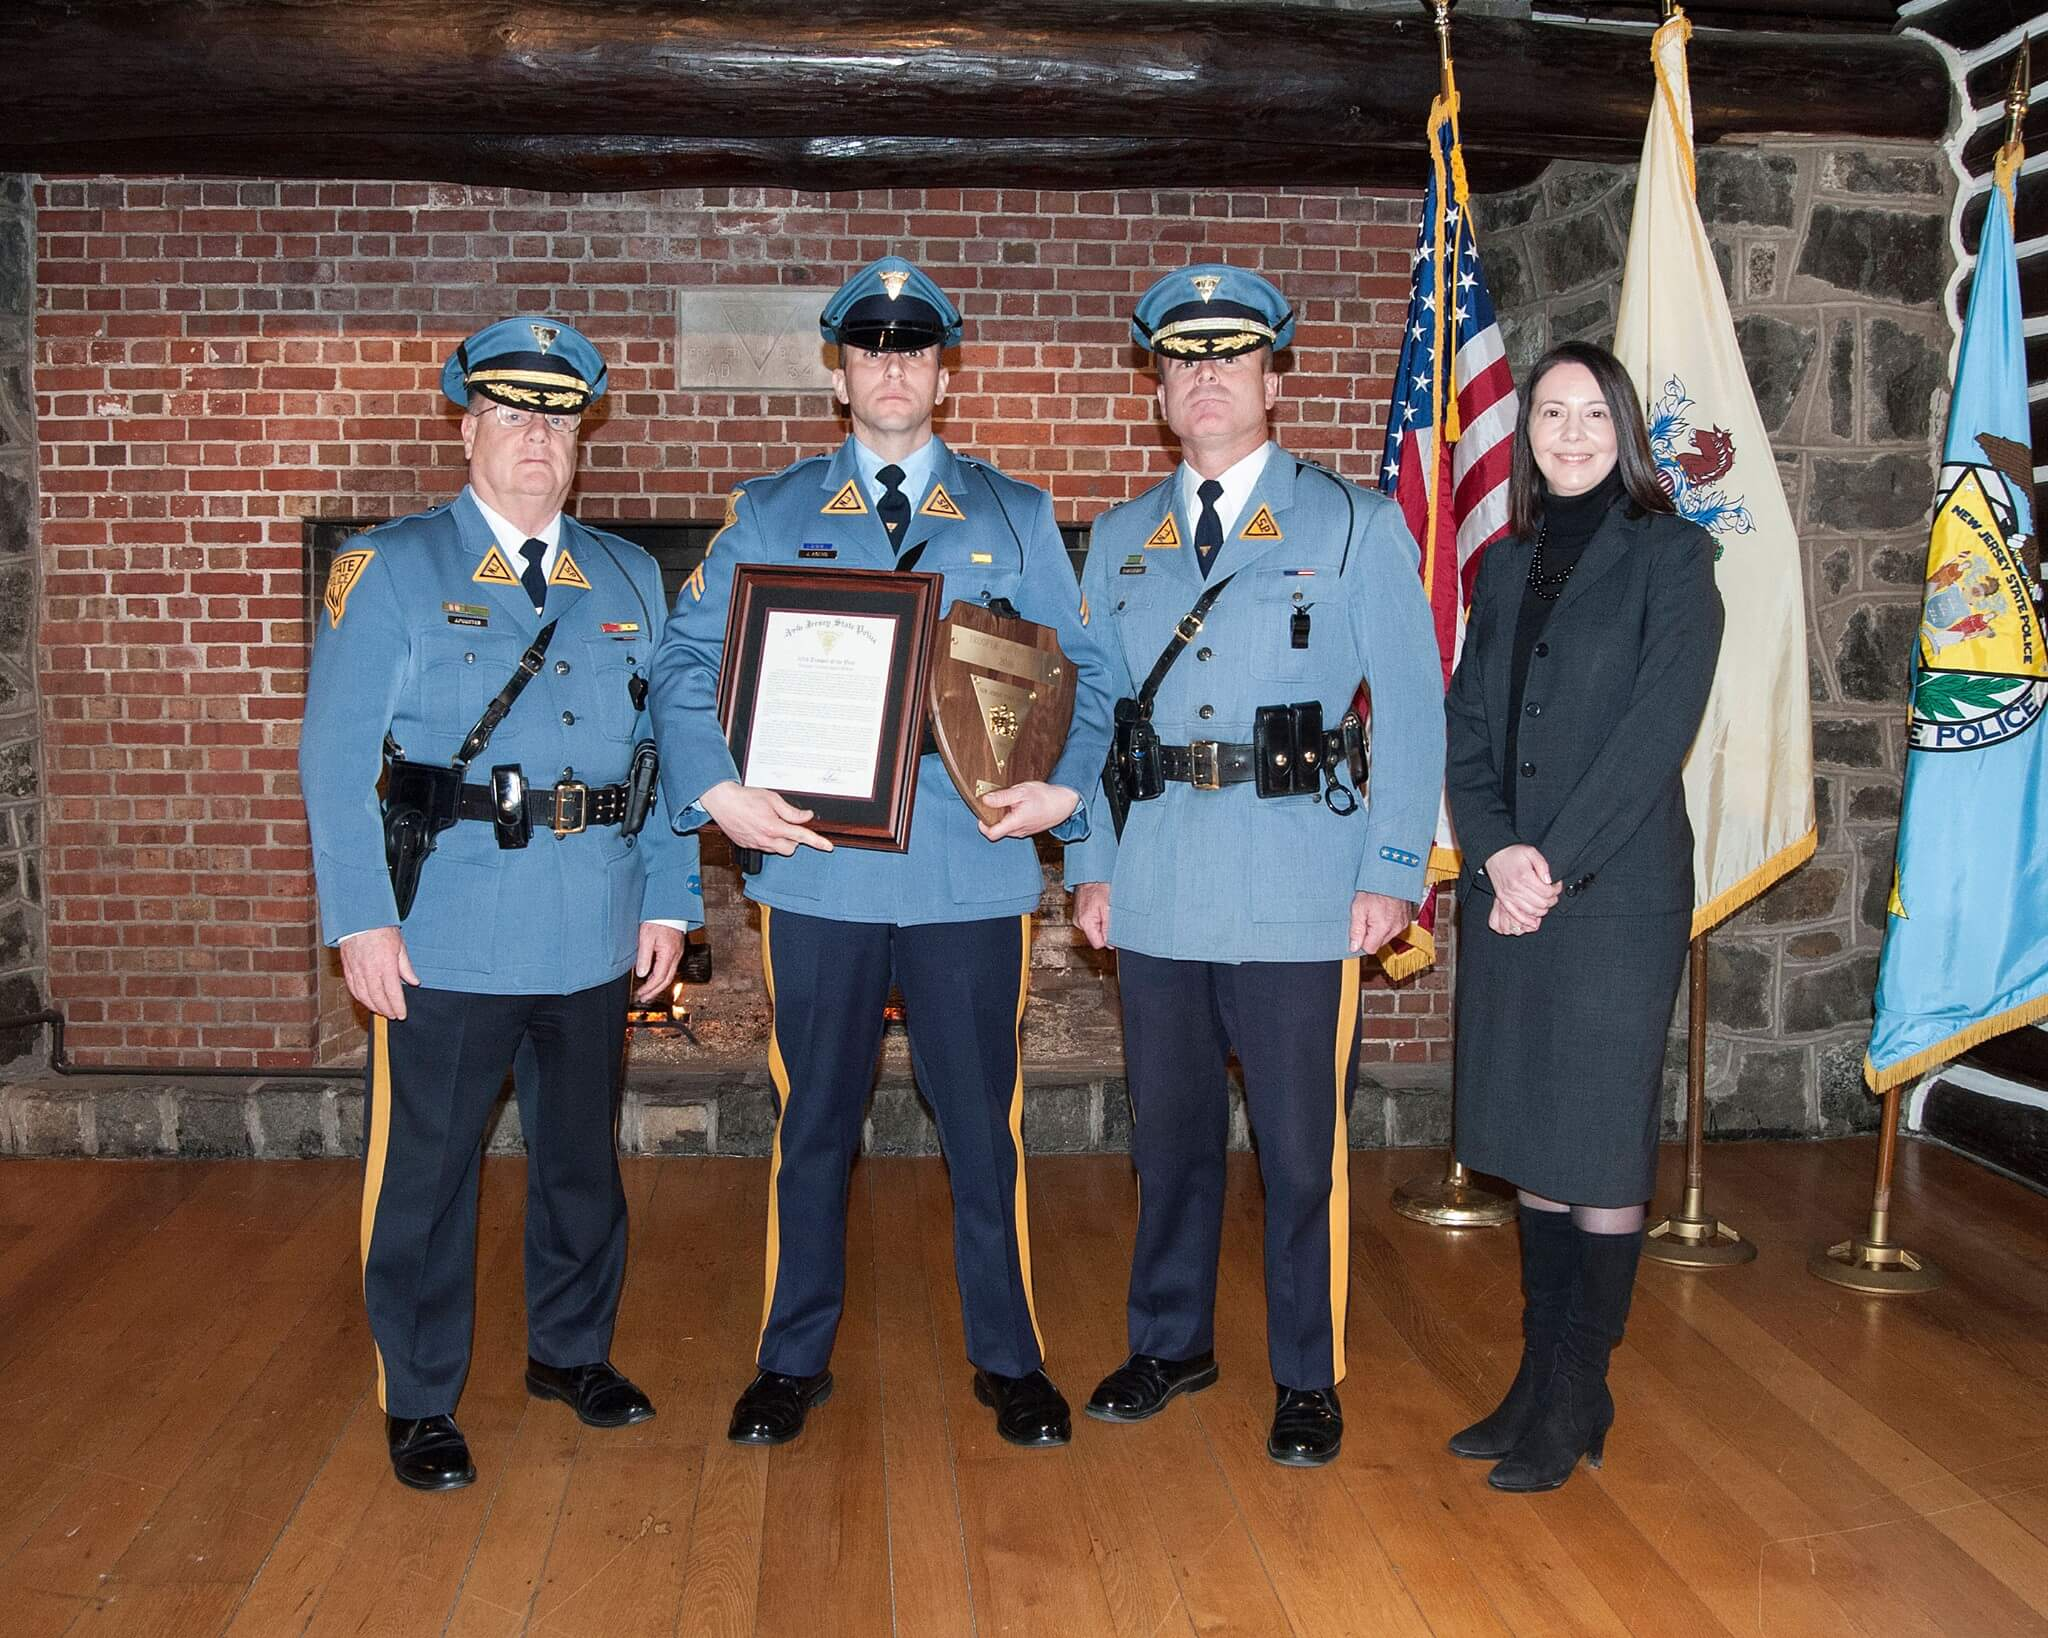 NJSP 2016 Trooper of the Year